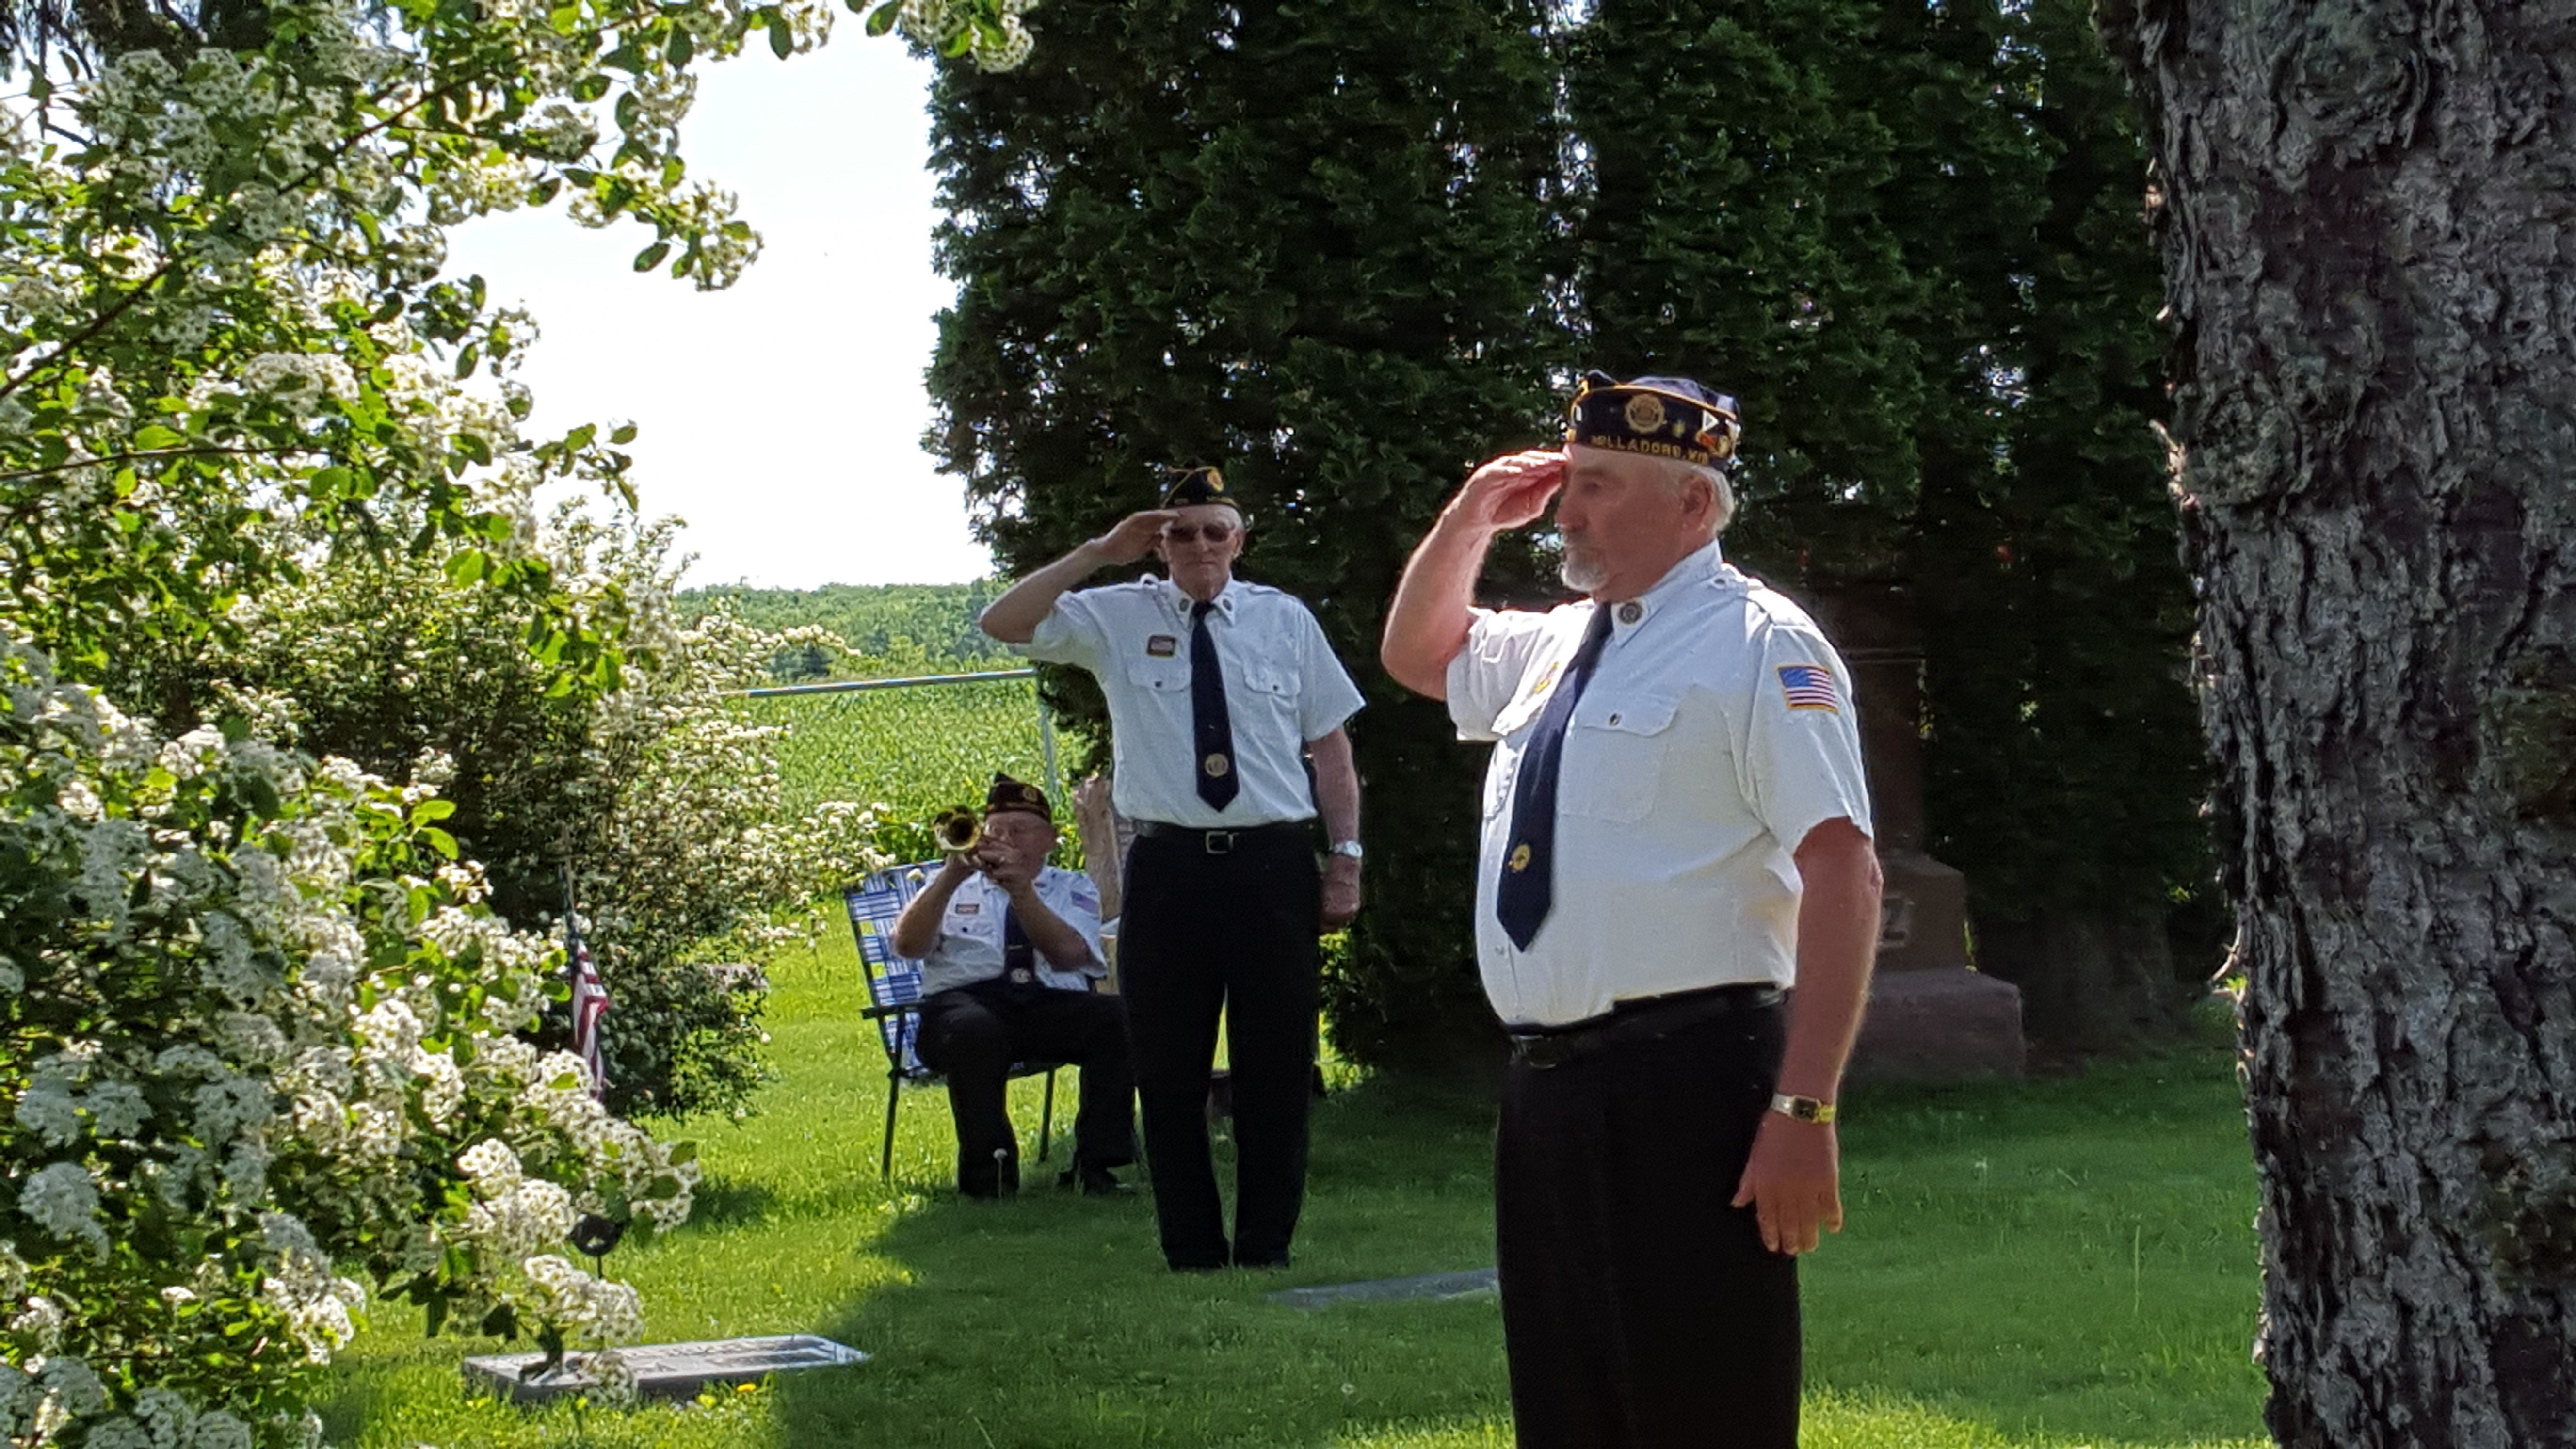 VFW Ceremony at Fairview Cemetery - 5-30-2016